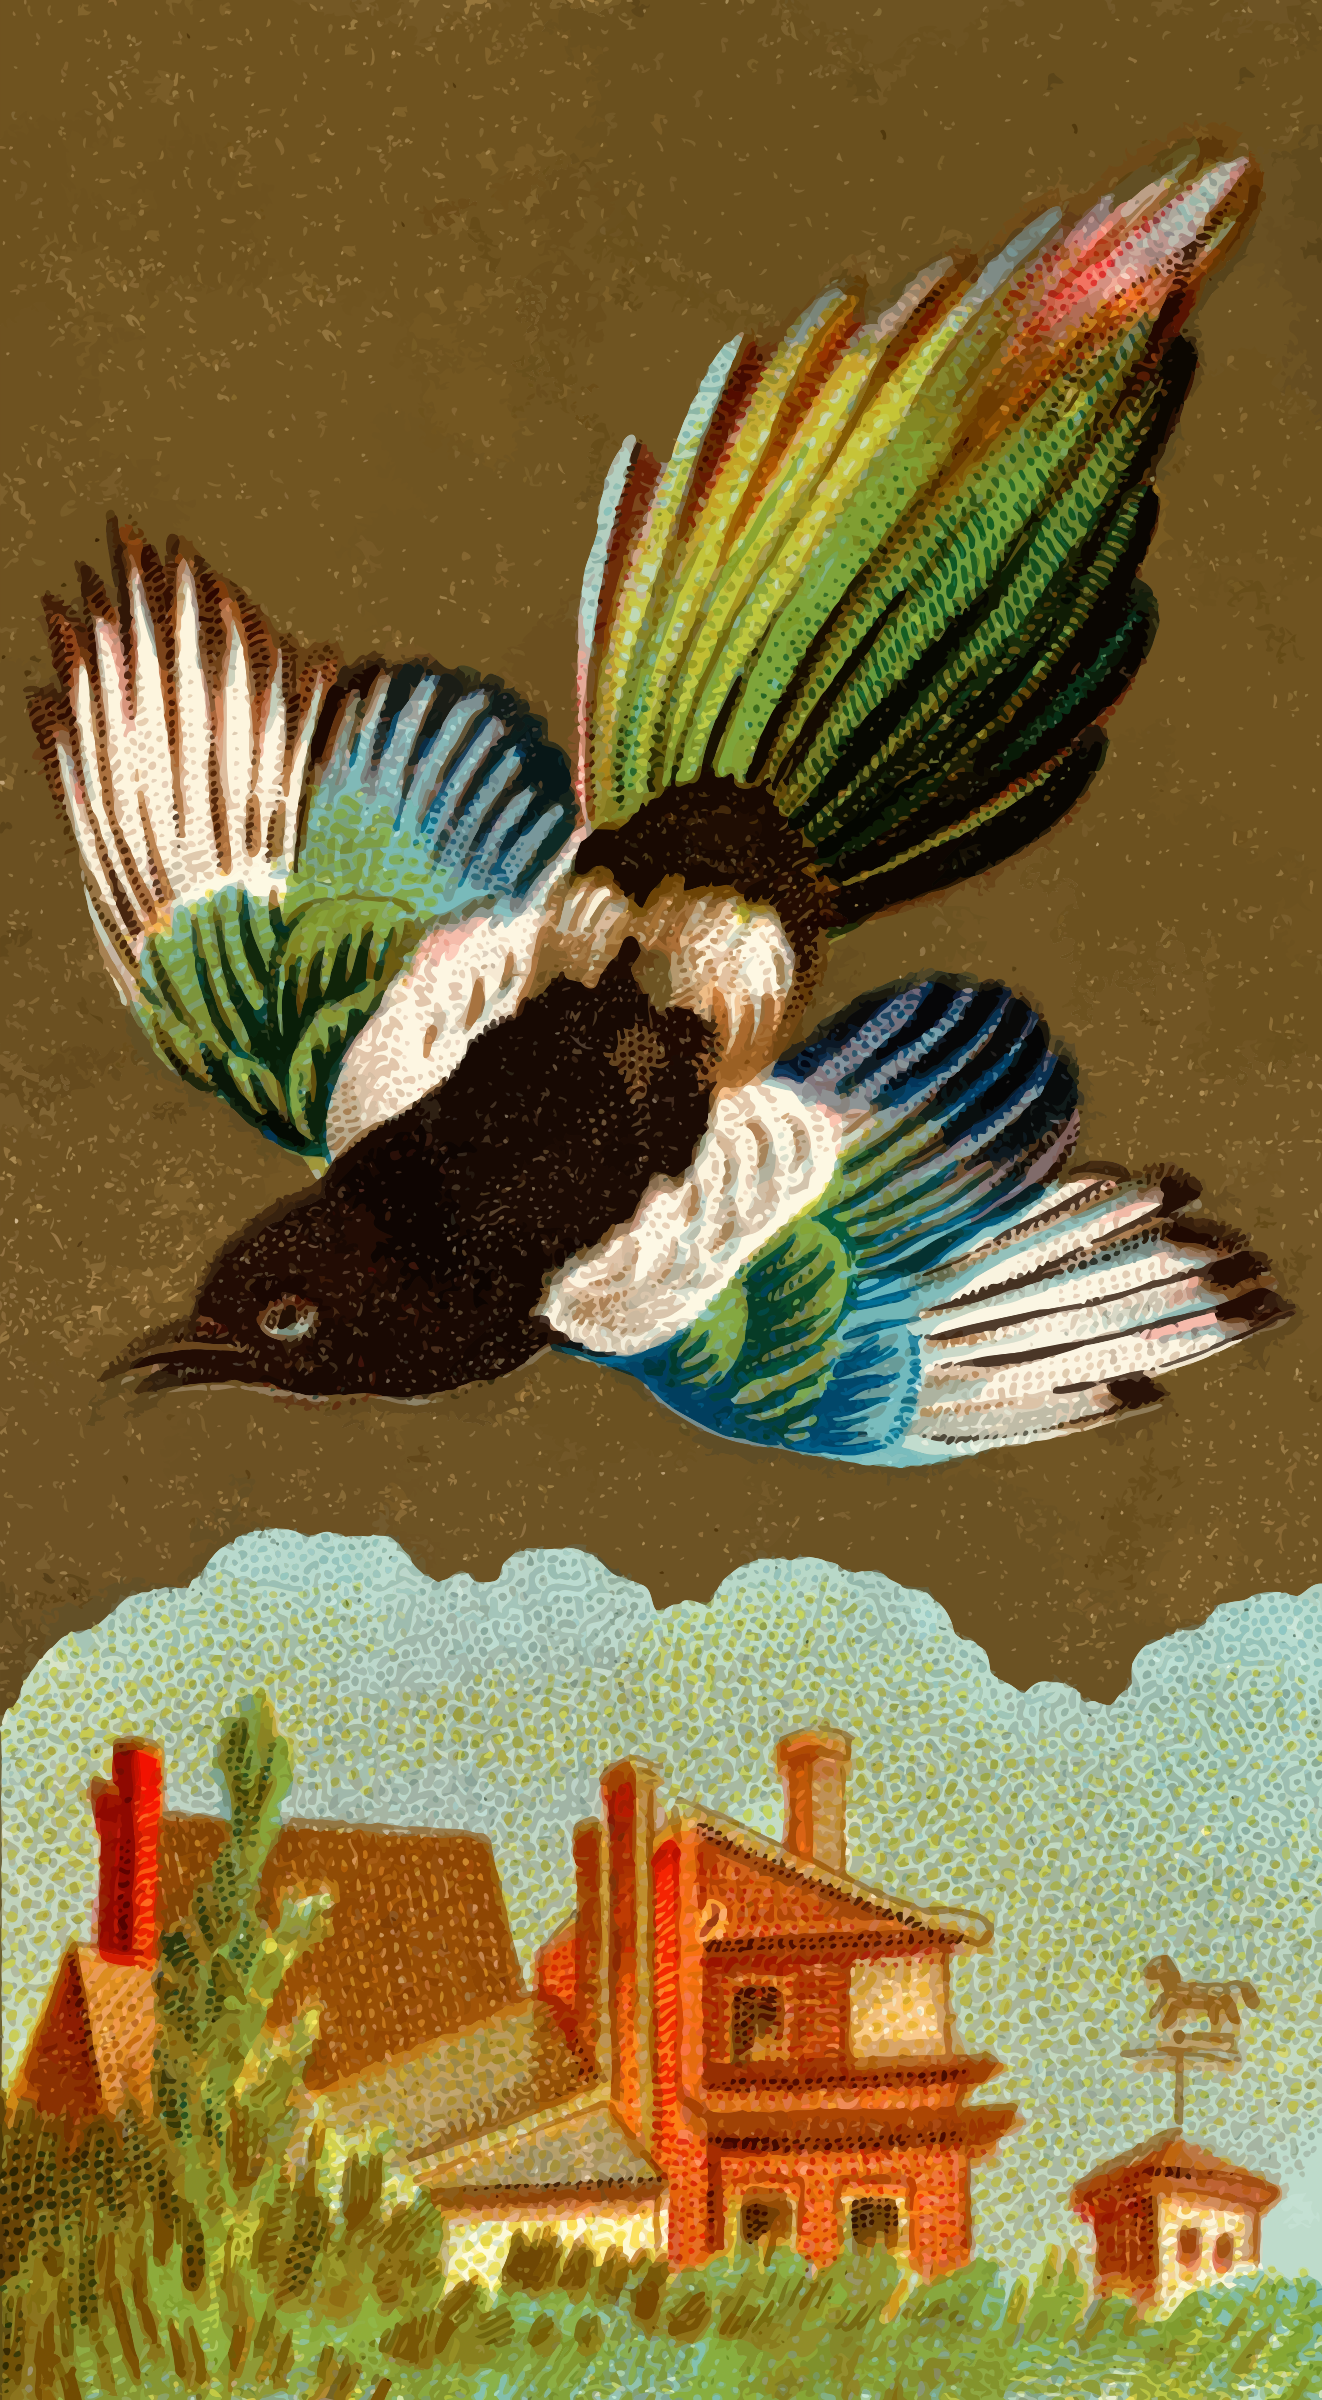 Cigarette card - Magpie by Firkin